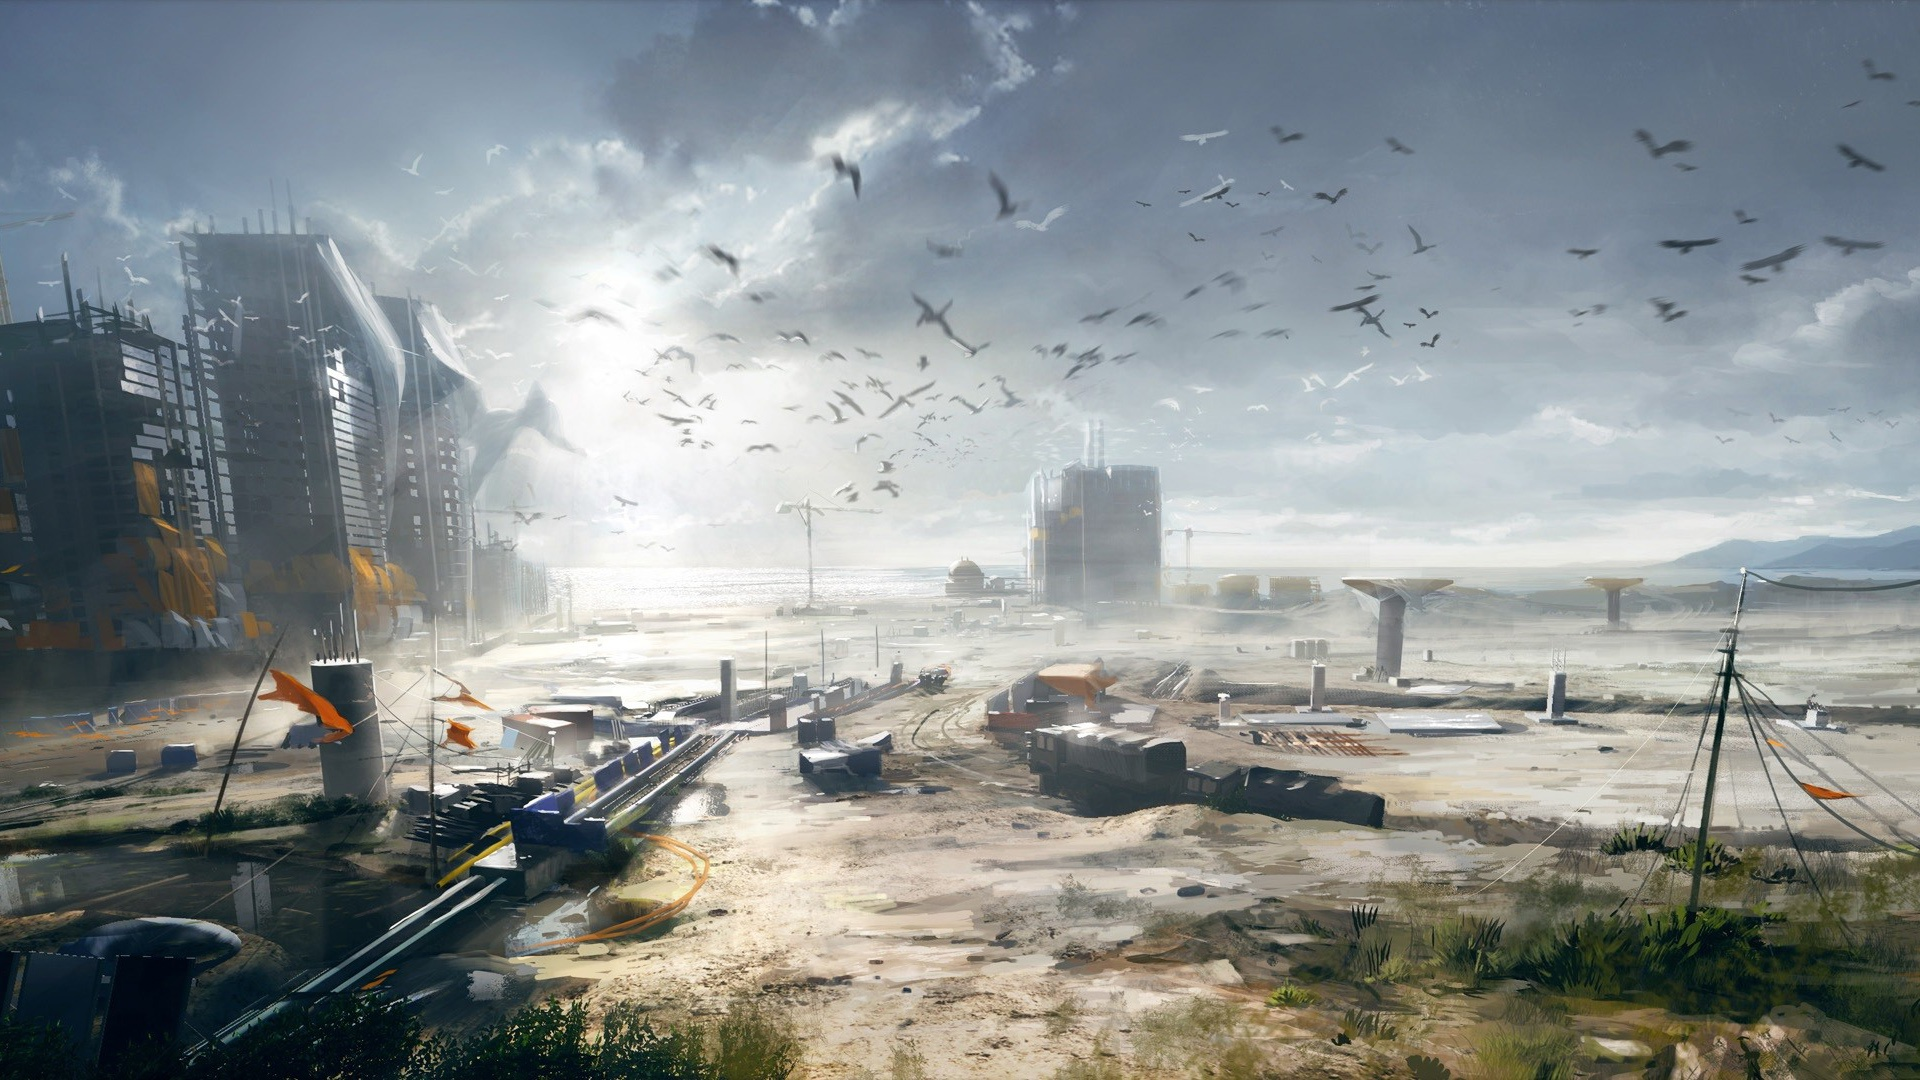 battlefield 4 concept art wallpapers in jpg format for free download